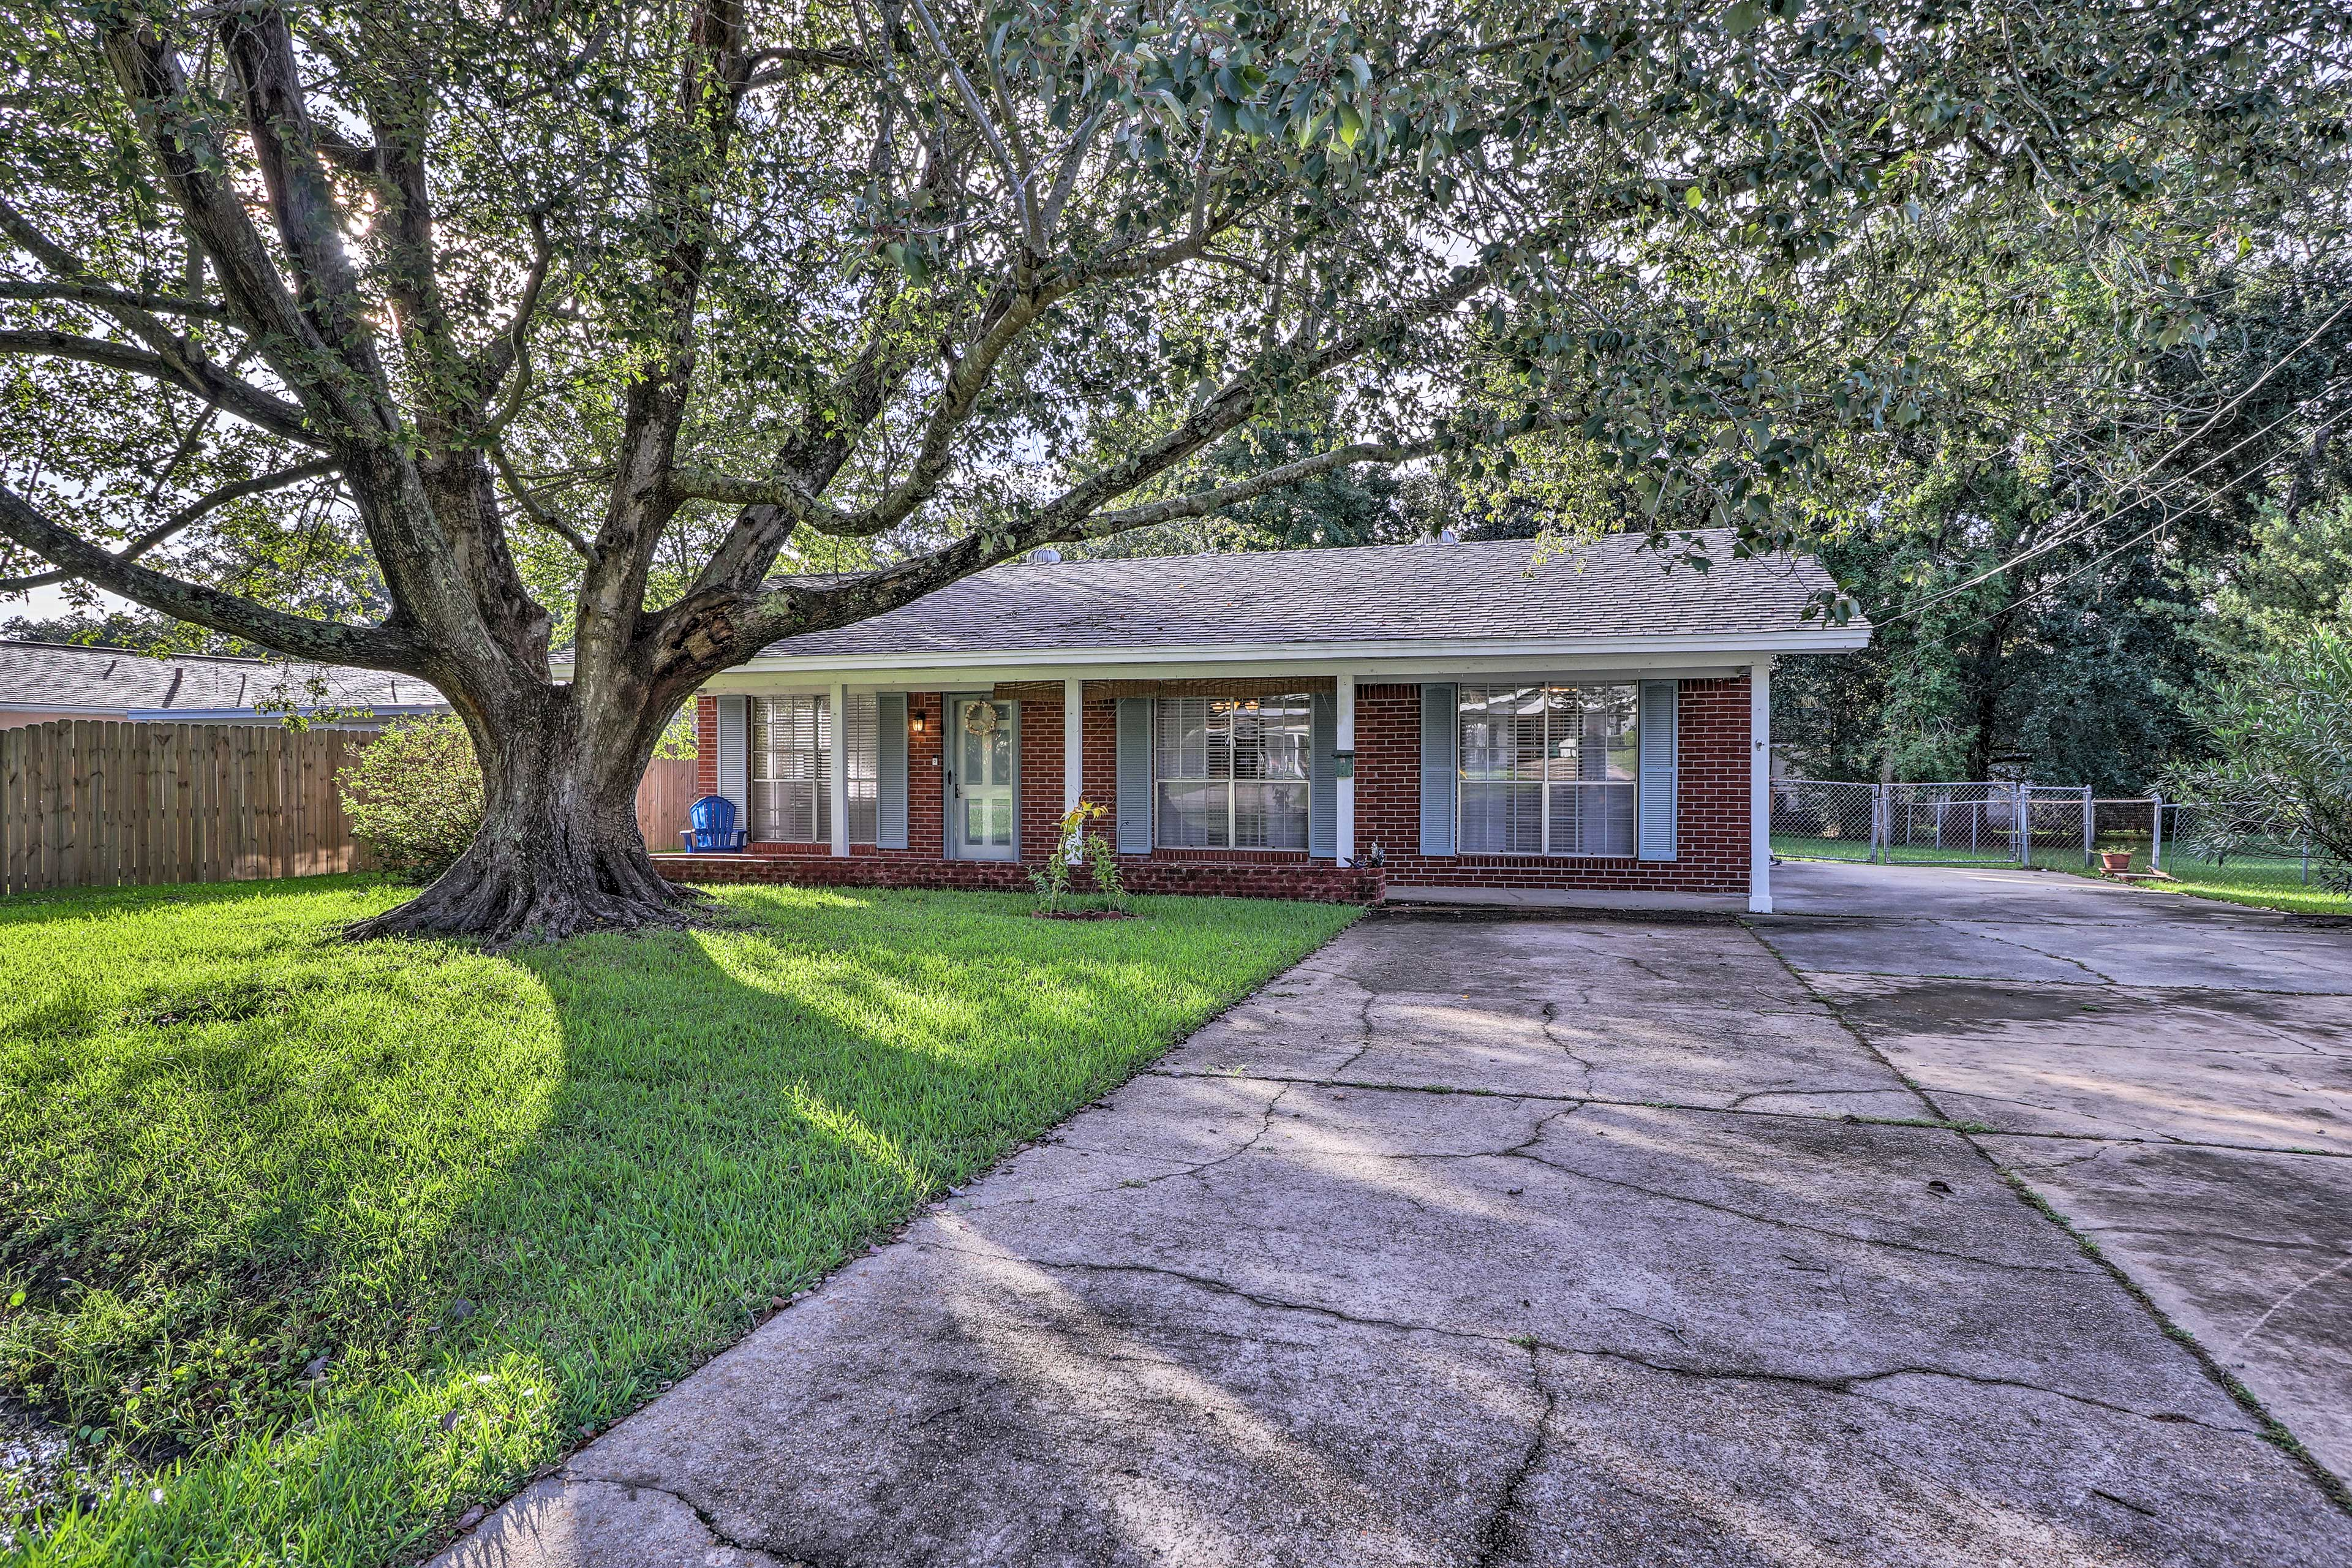 This vacation rental unit is located 2 blocks from downtown Long Beach, MS.